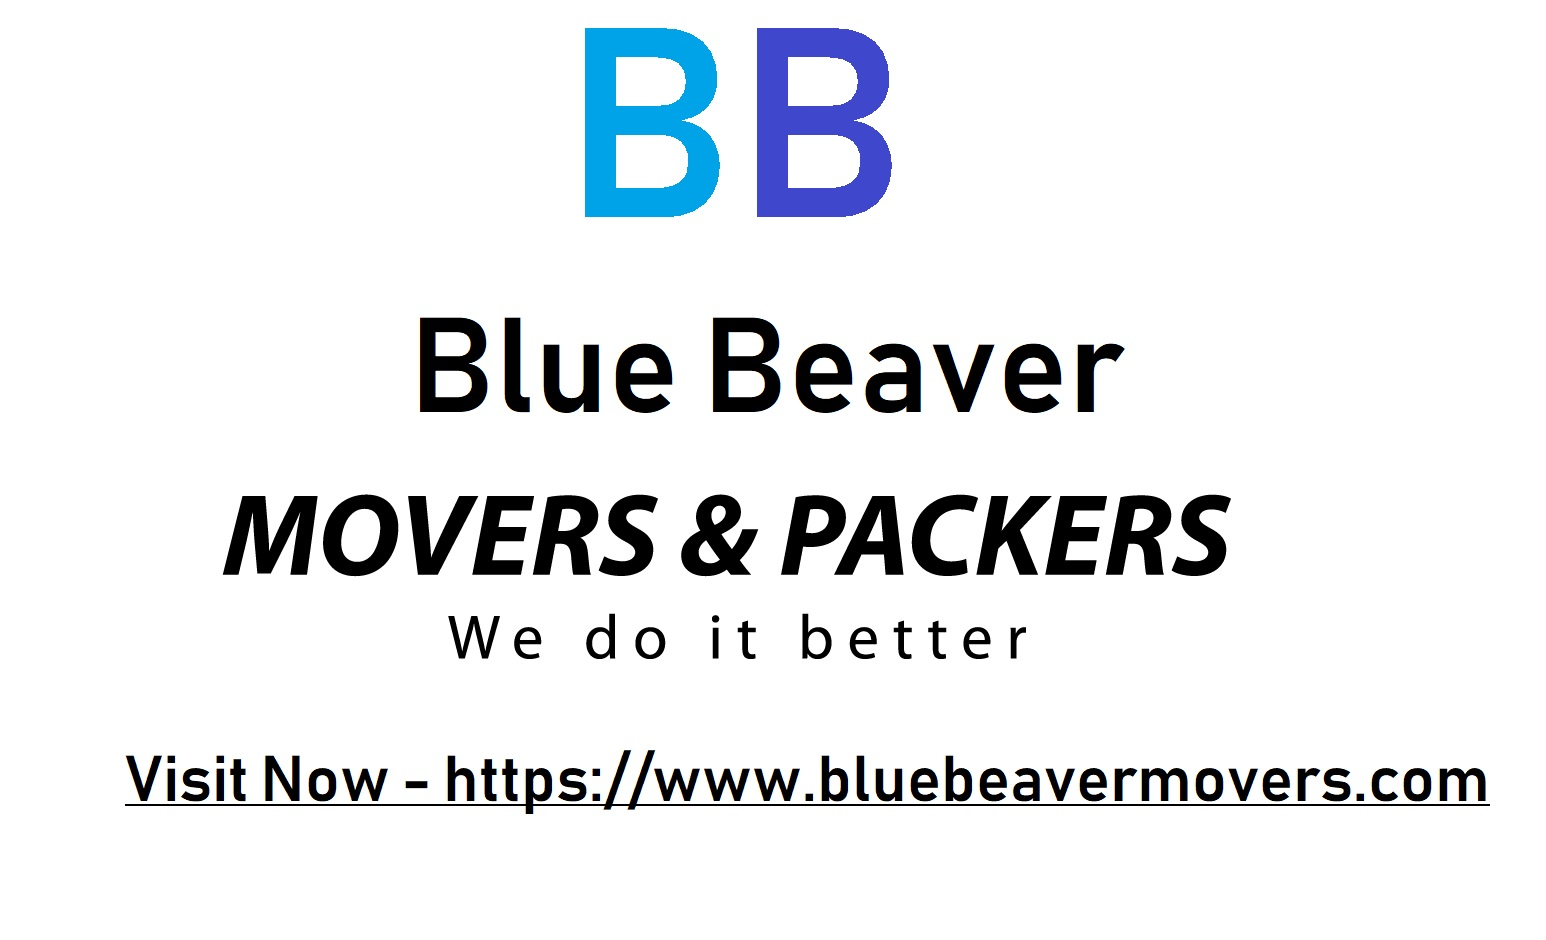 High-quality Mover and Packers Company in Texas